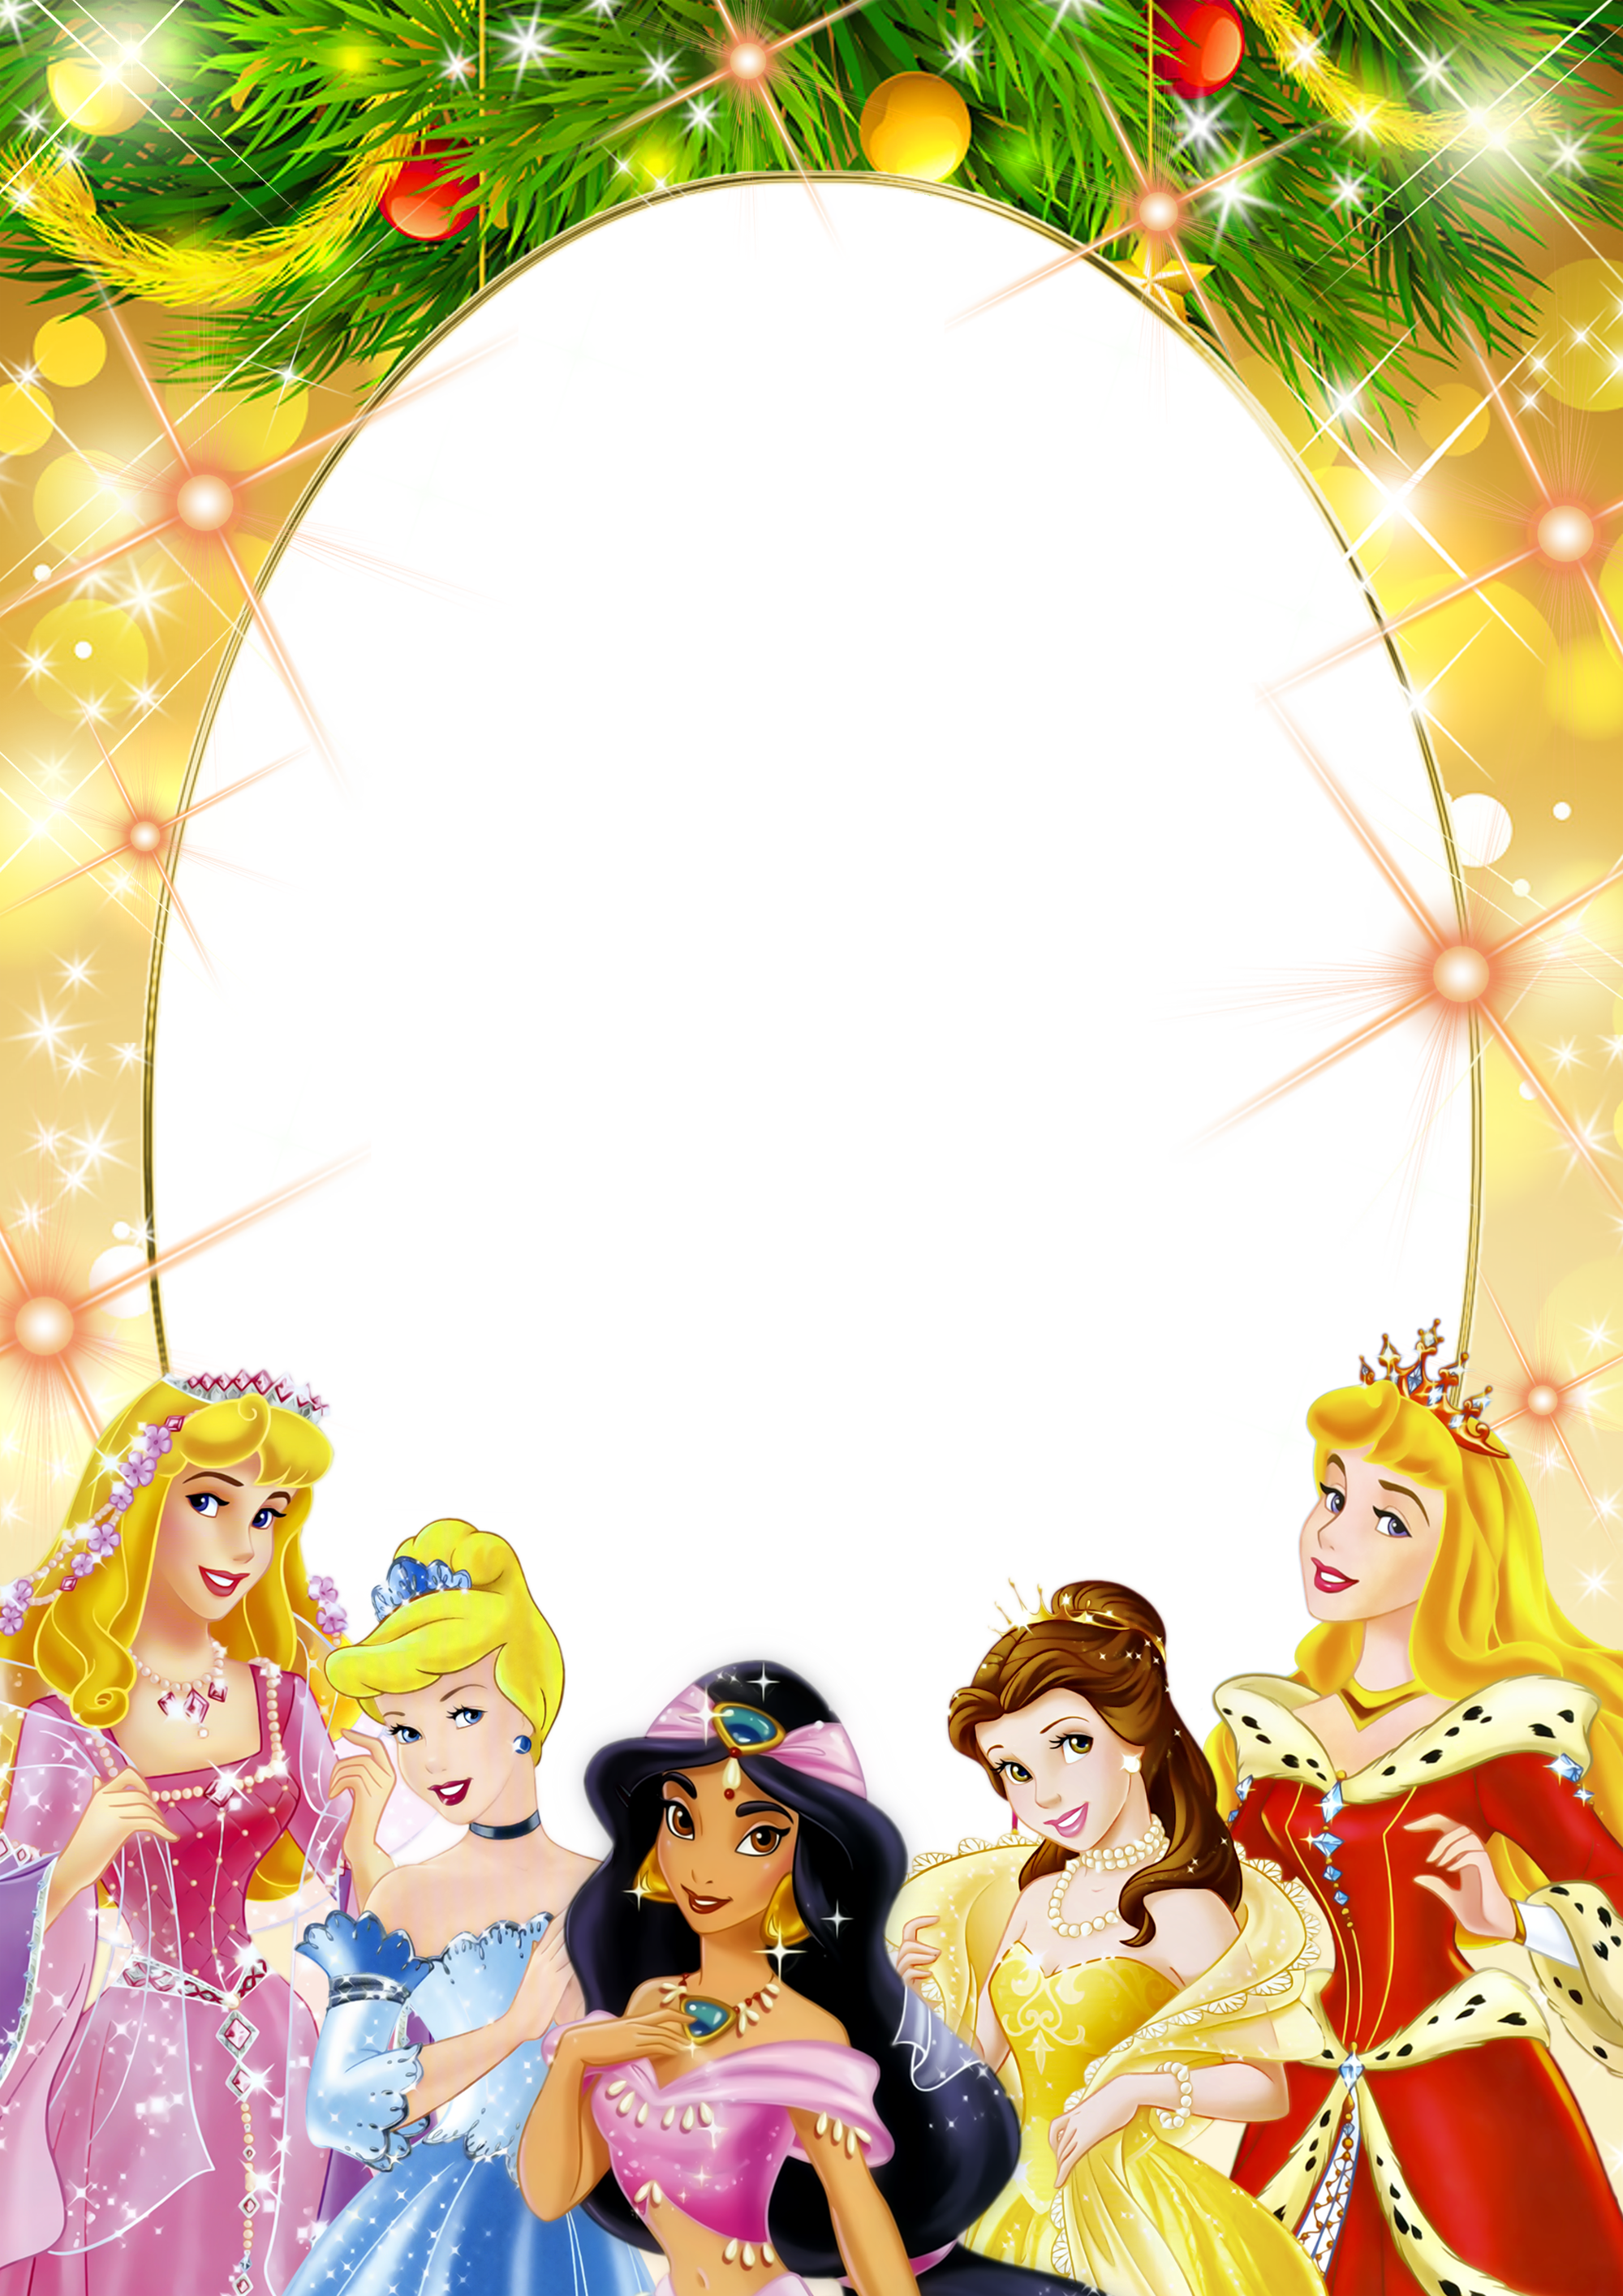 Transparent Kids PNG Frame with Christmas Princesses ...